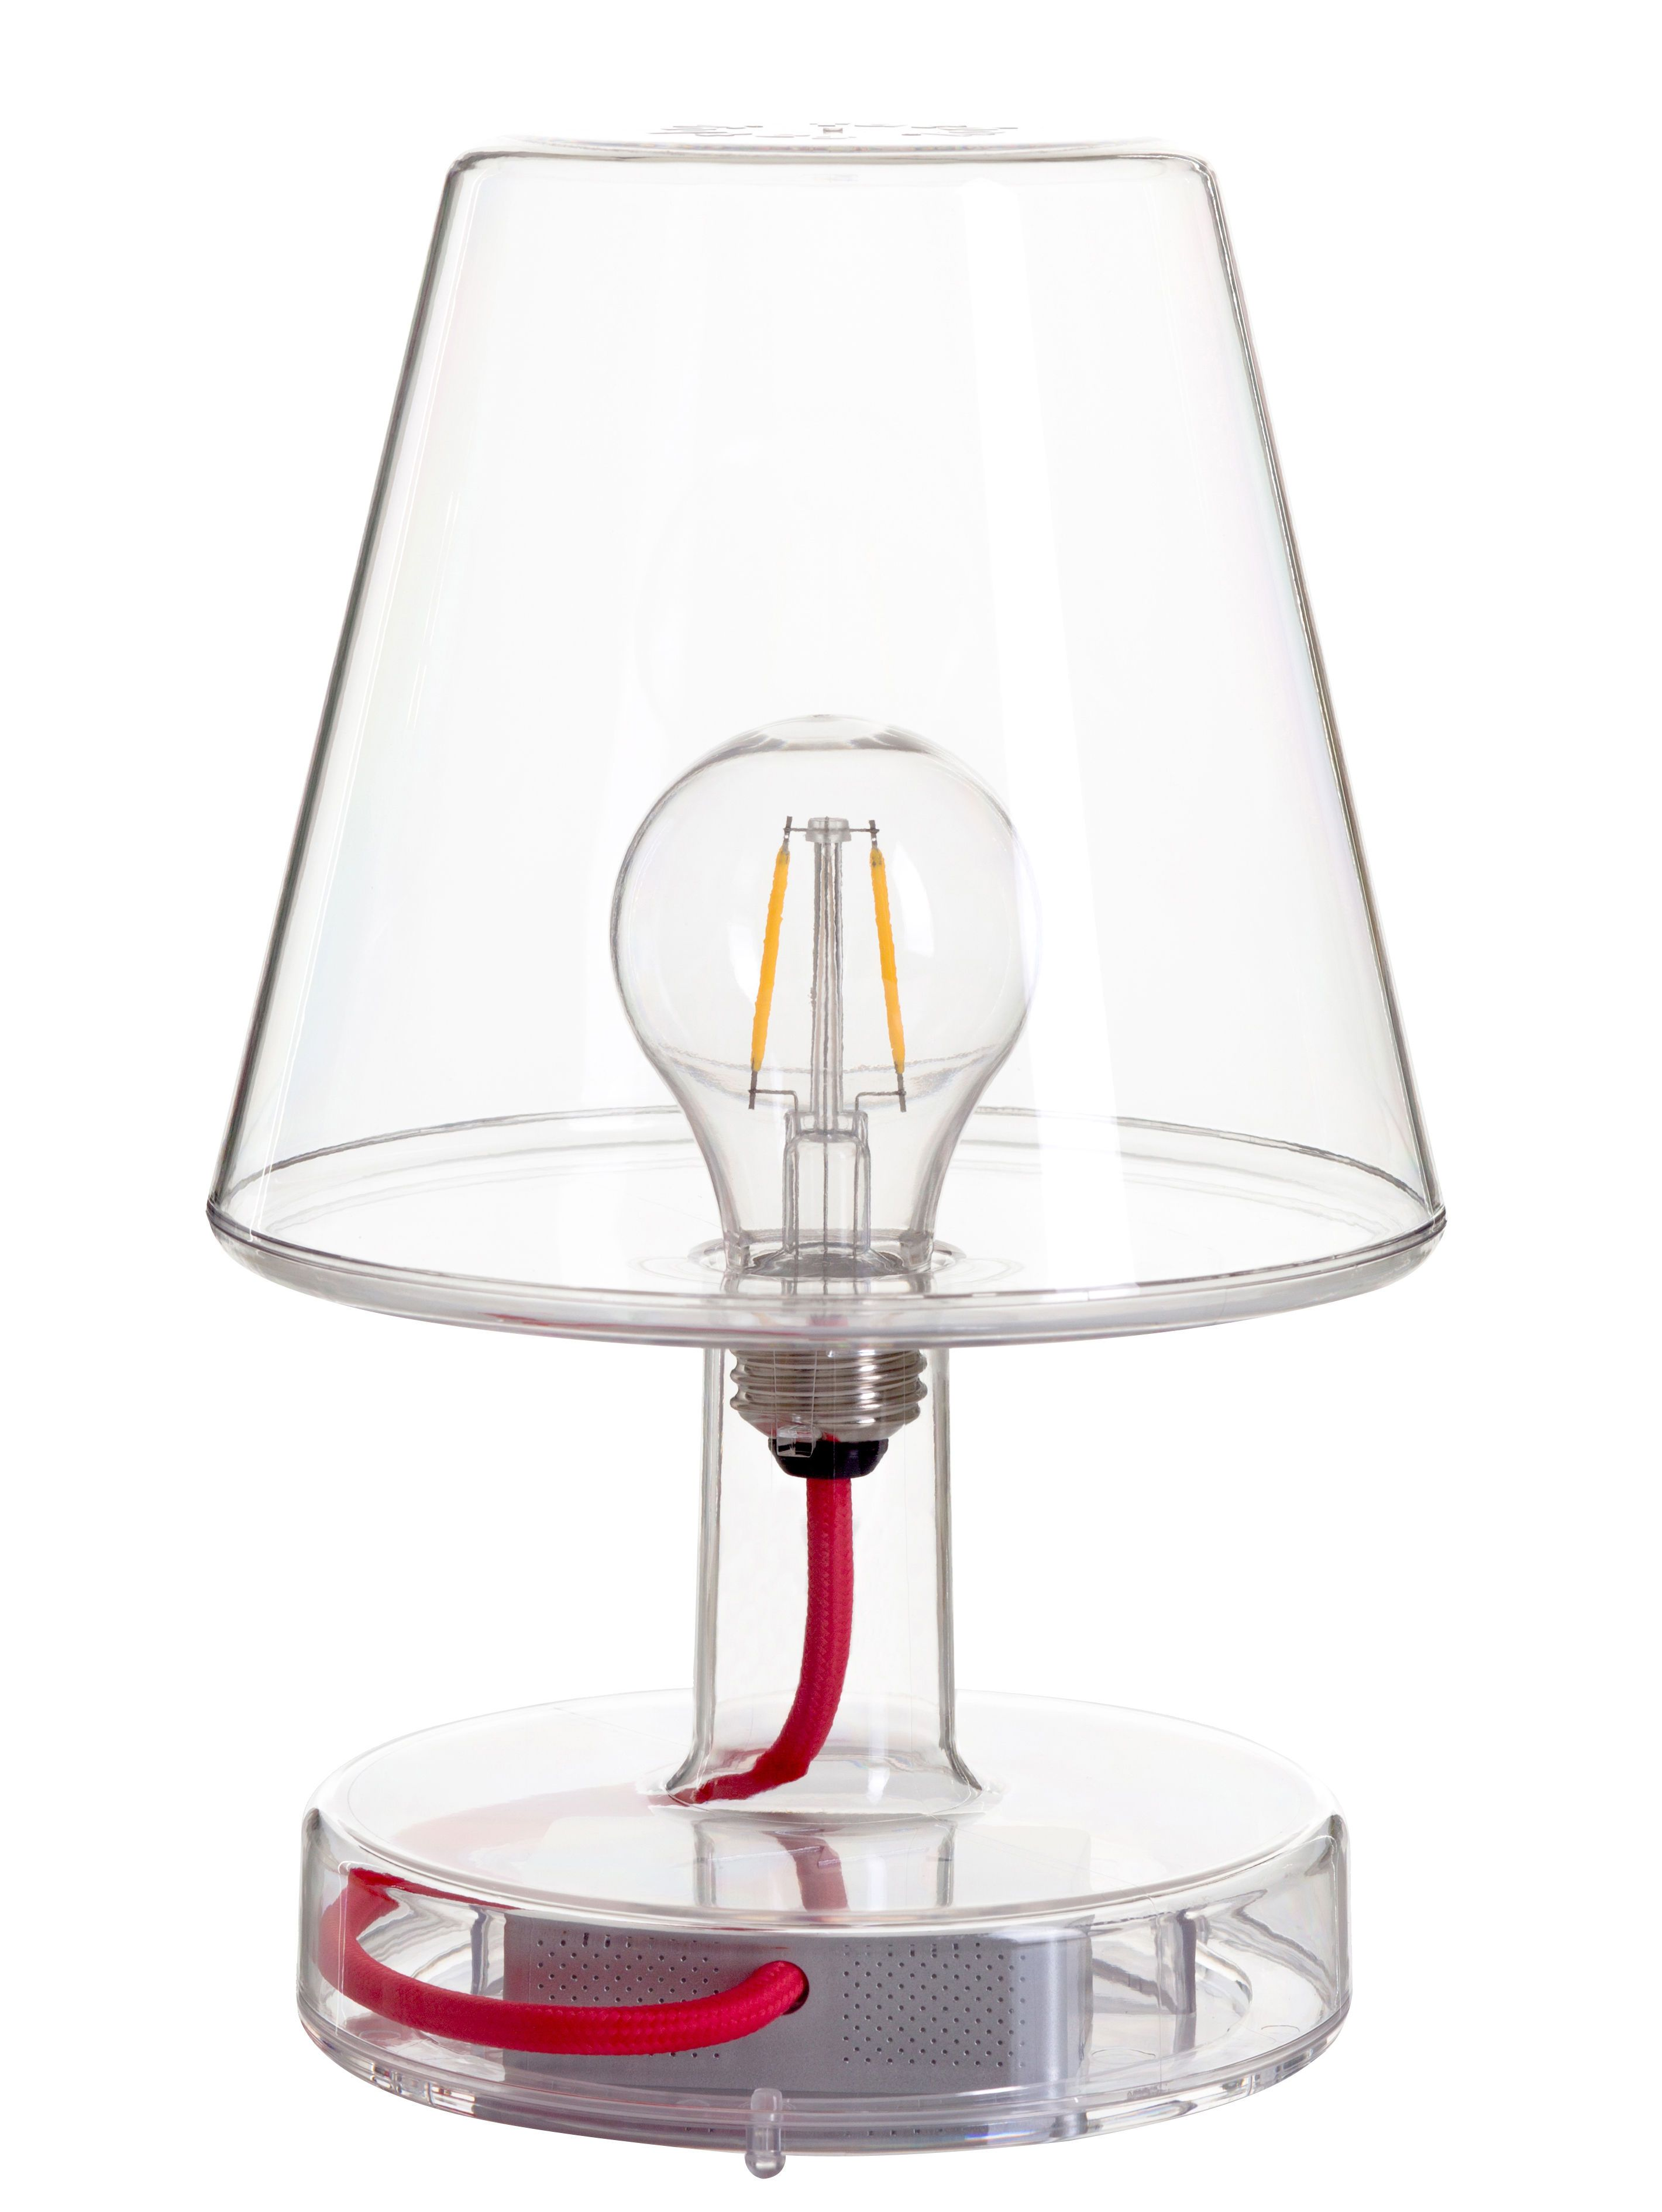 Fatboy Transloetje Wireless Lamp Transparent Made In Design Uk Lamp Portable Led Lights Small Table Lamp